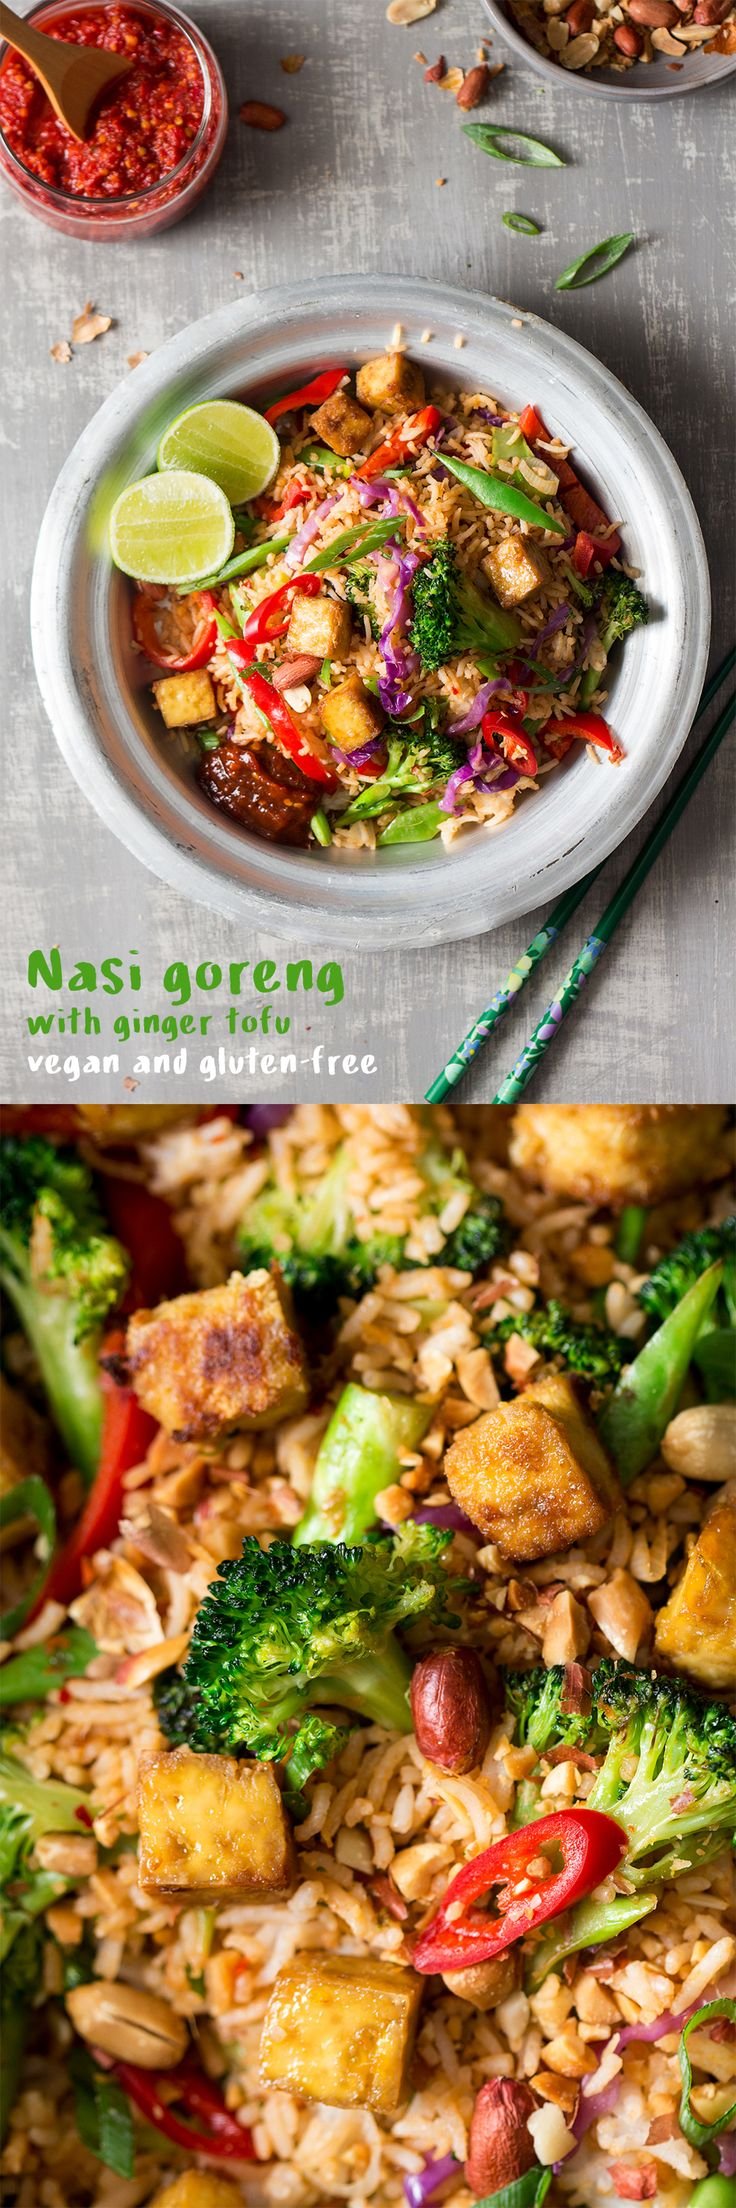 Nasi goreng//tofu, ginger, lime, red chiles, scallions, green beans, red bell, broccoli, peanuts [cook rice ahead]